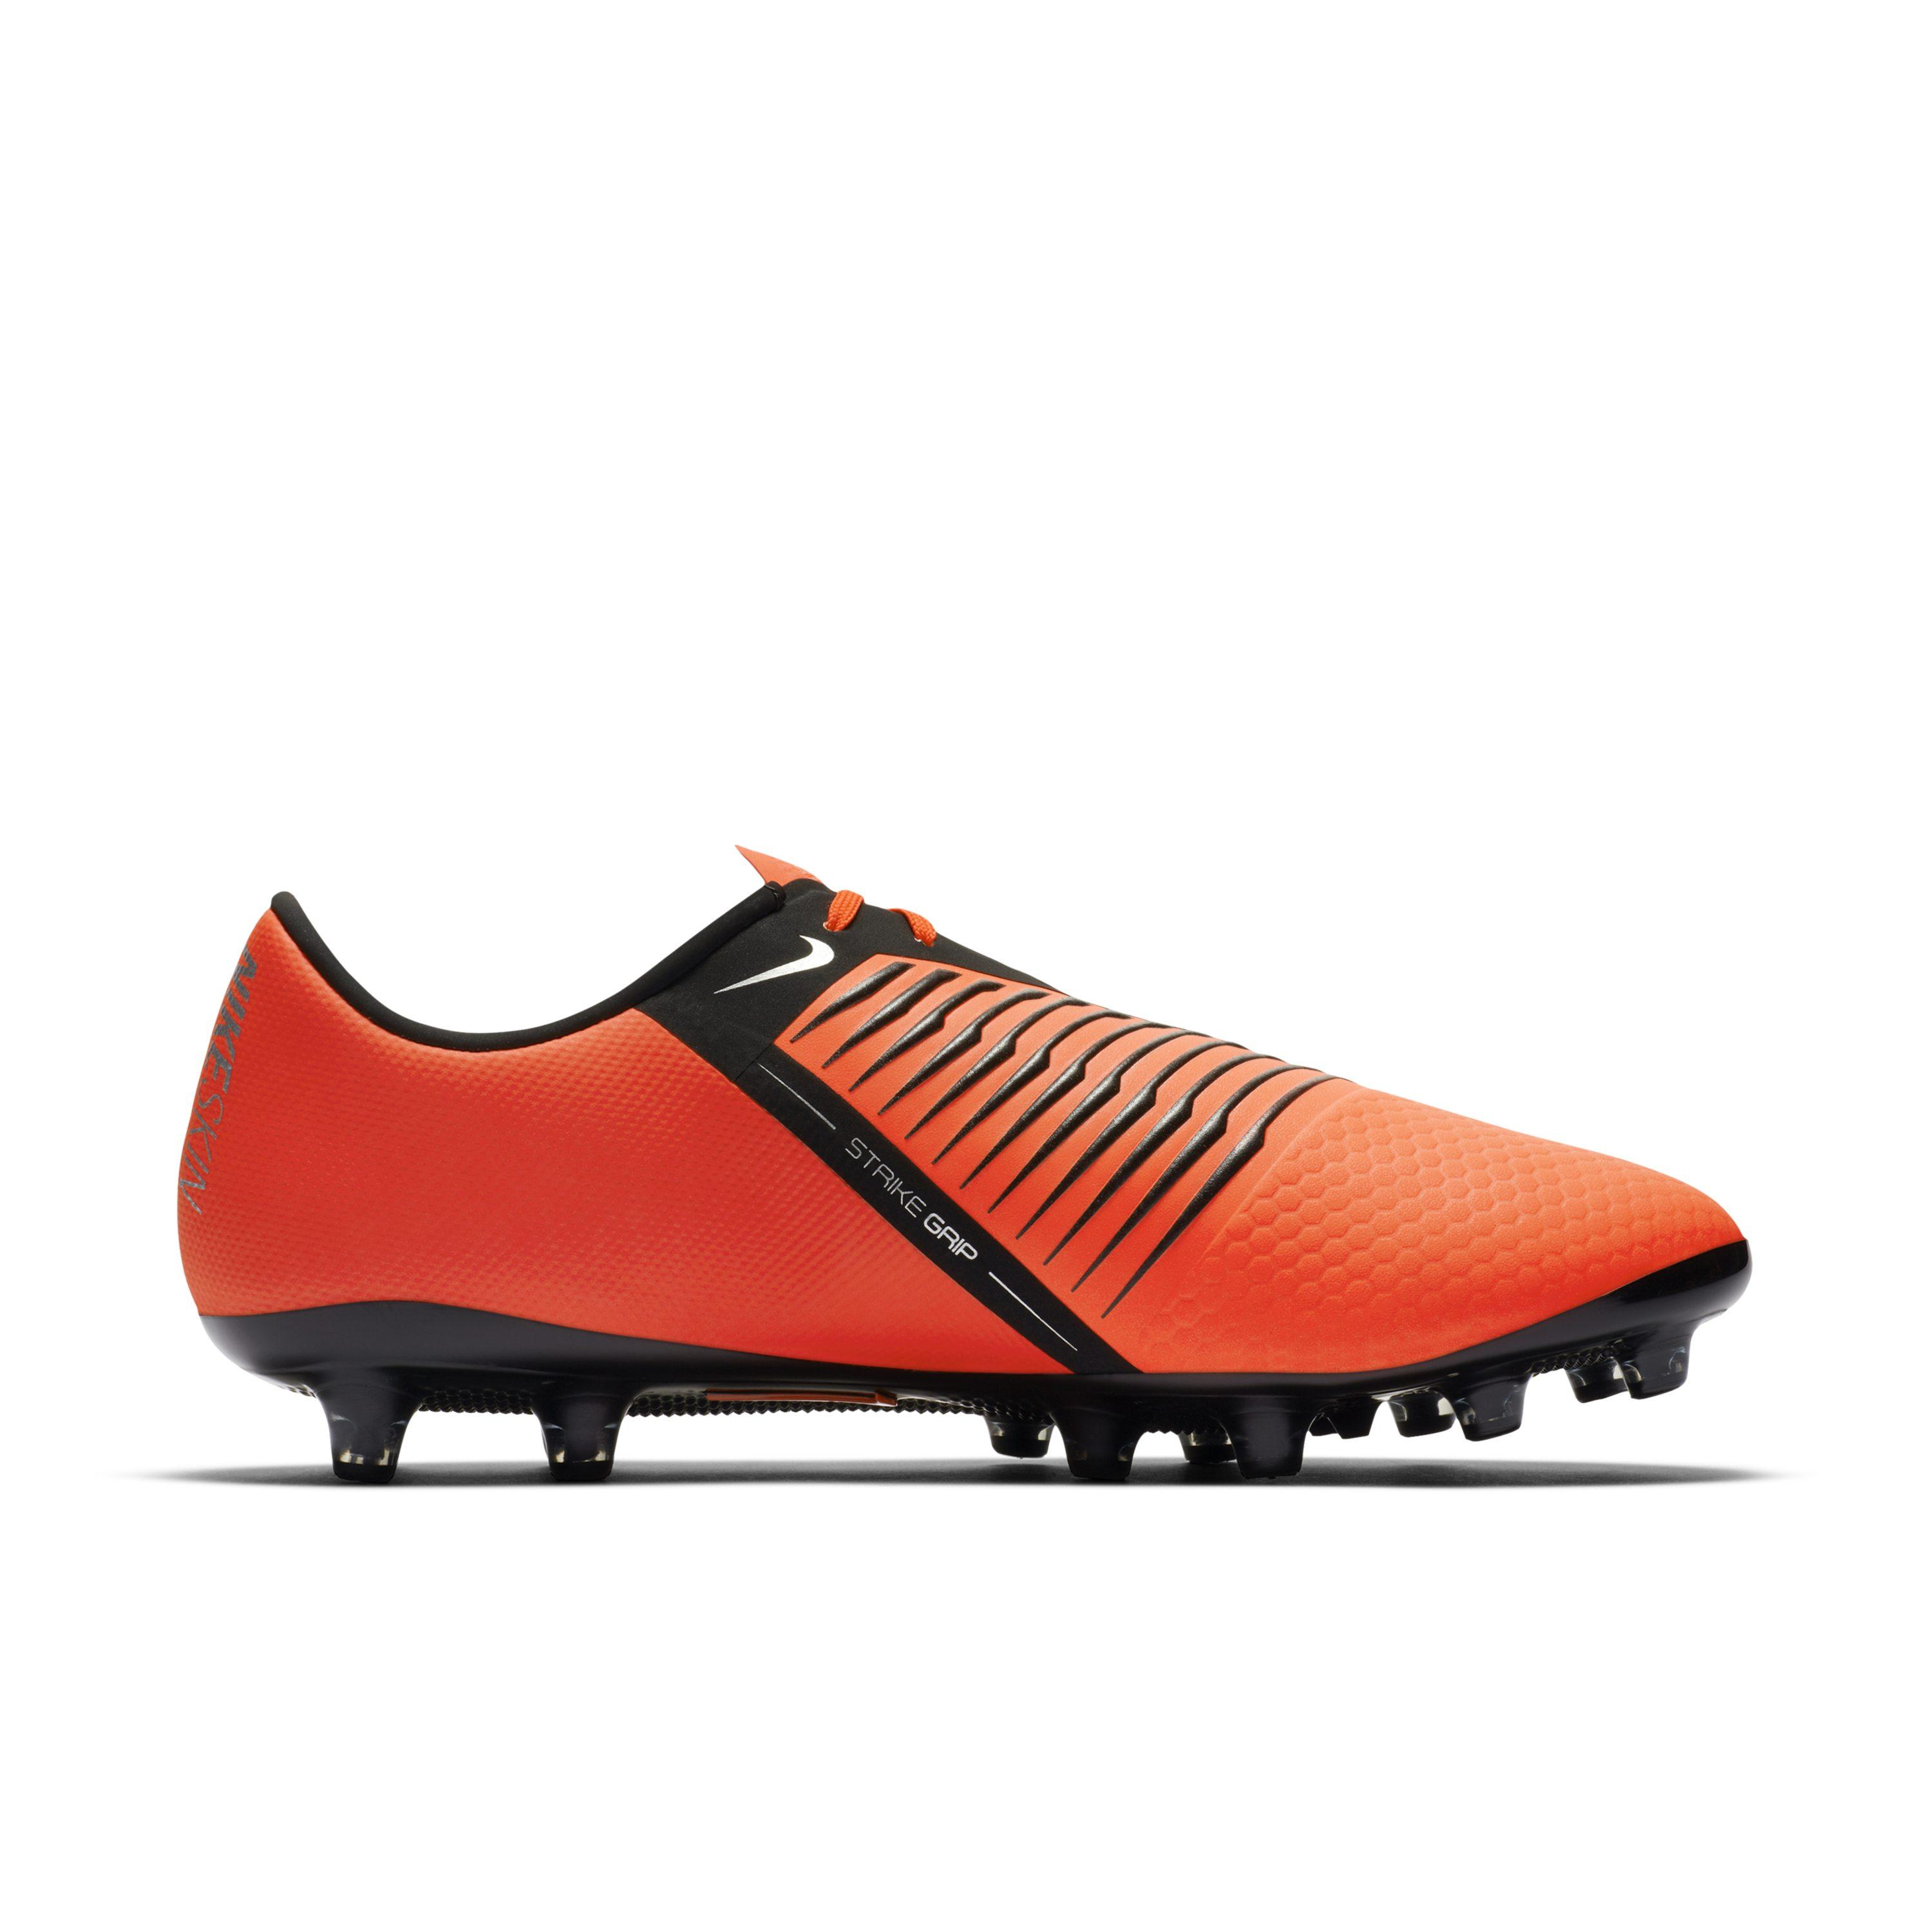 181ae5fc3 Nike Phantom Venom Pro Ag-pro Artificial-grass Football Boot in Red ...